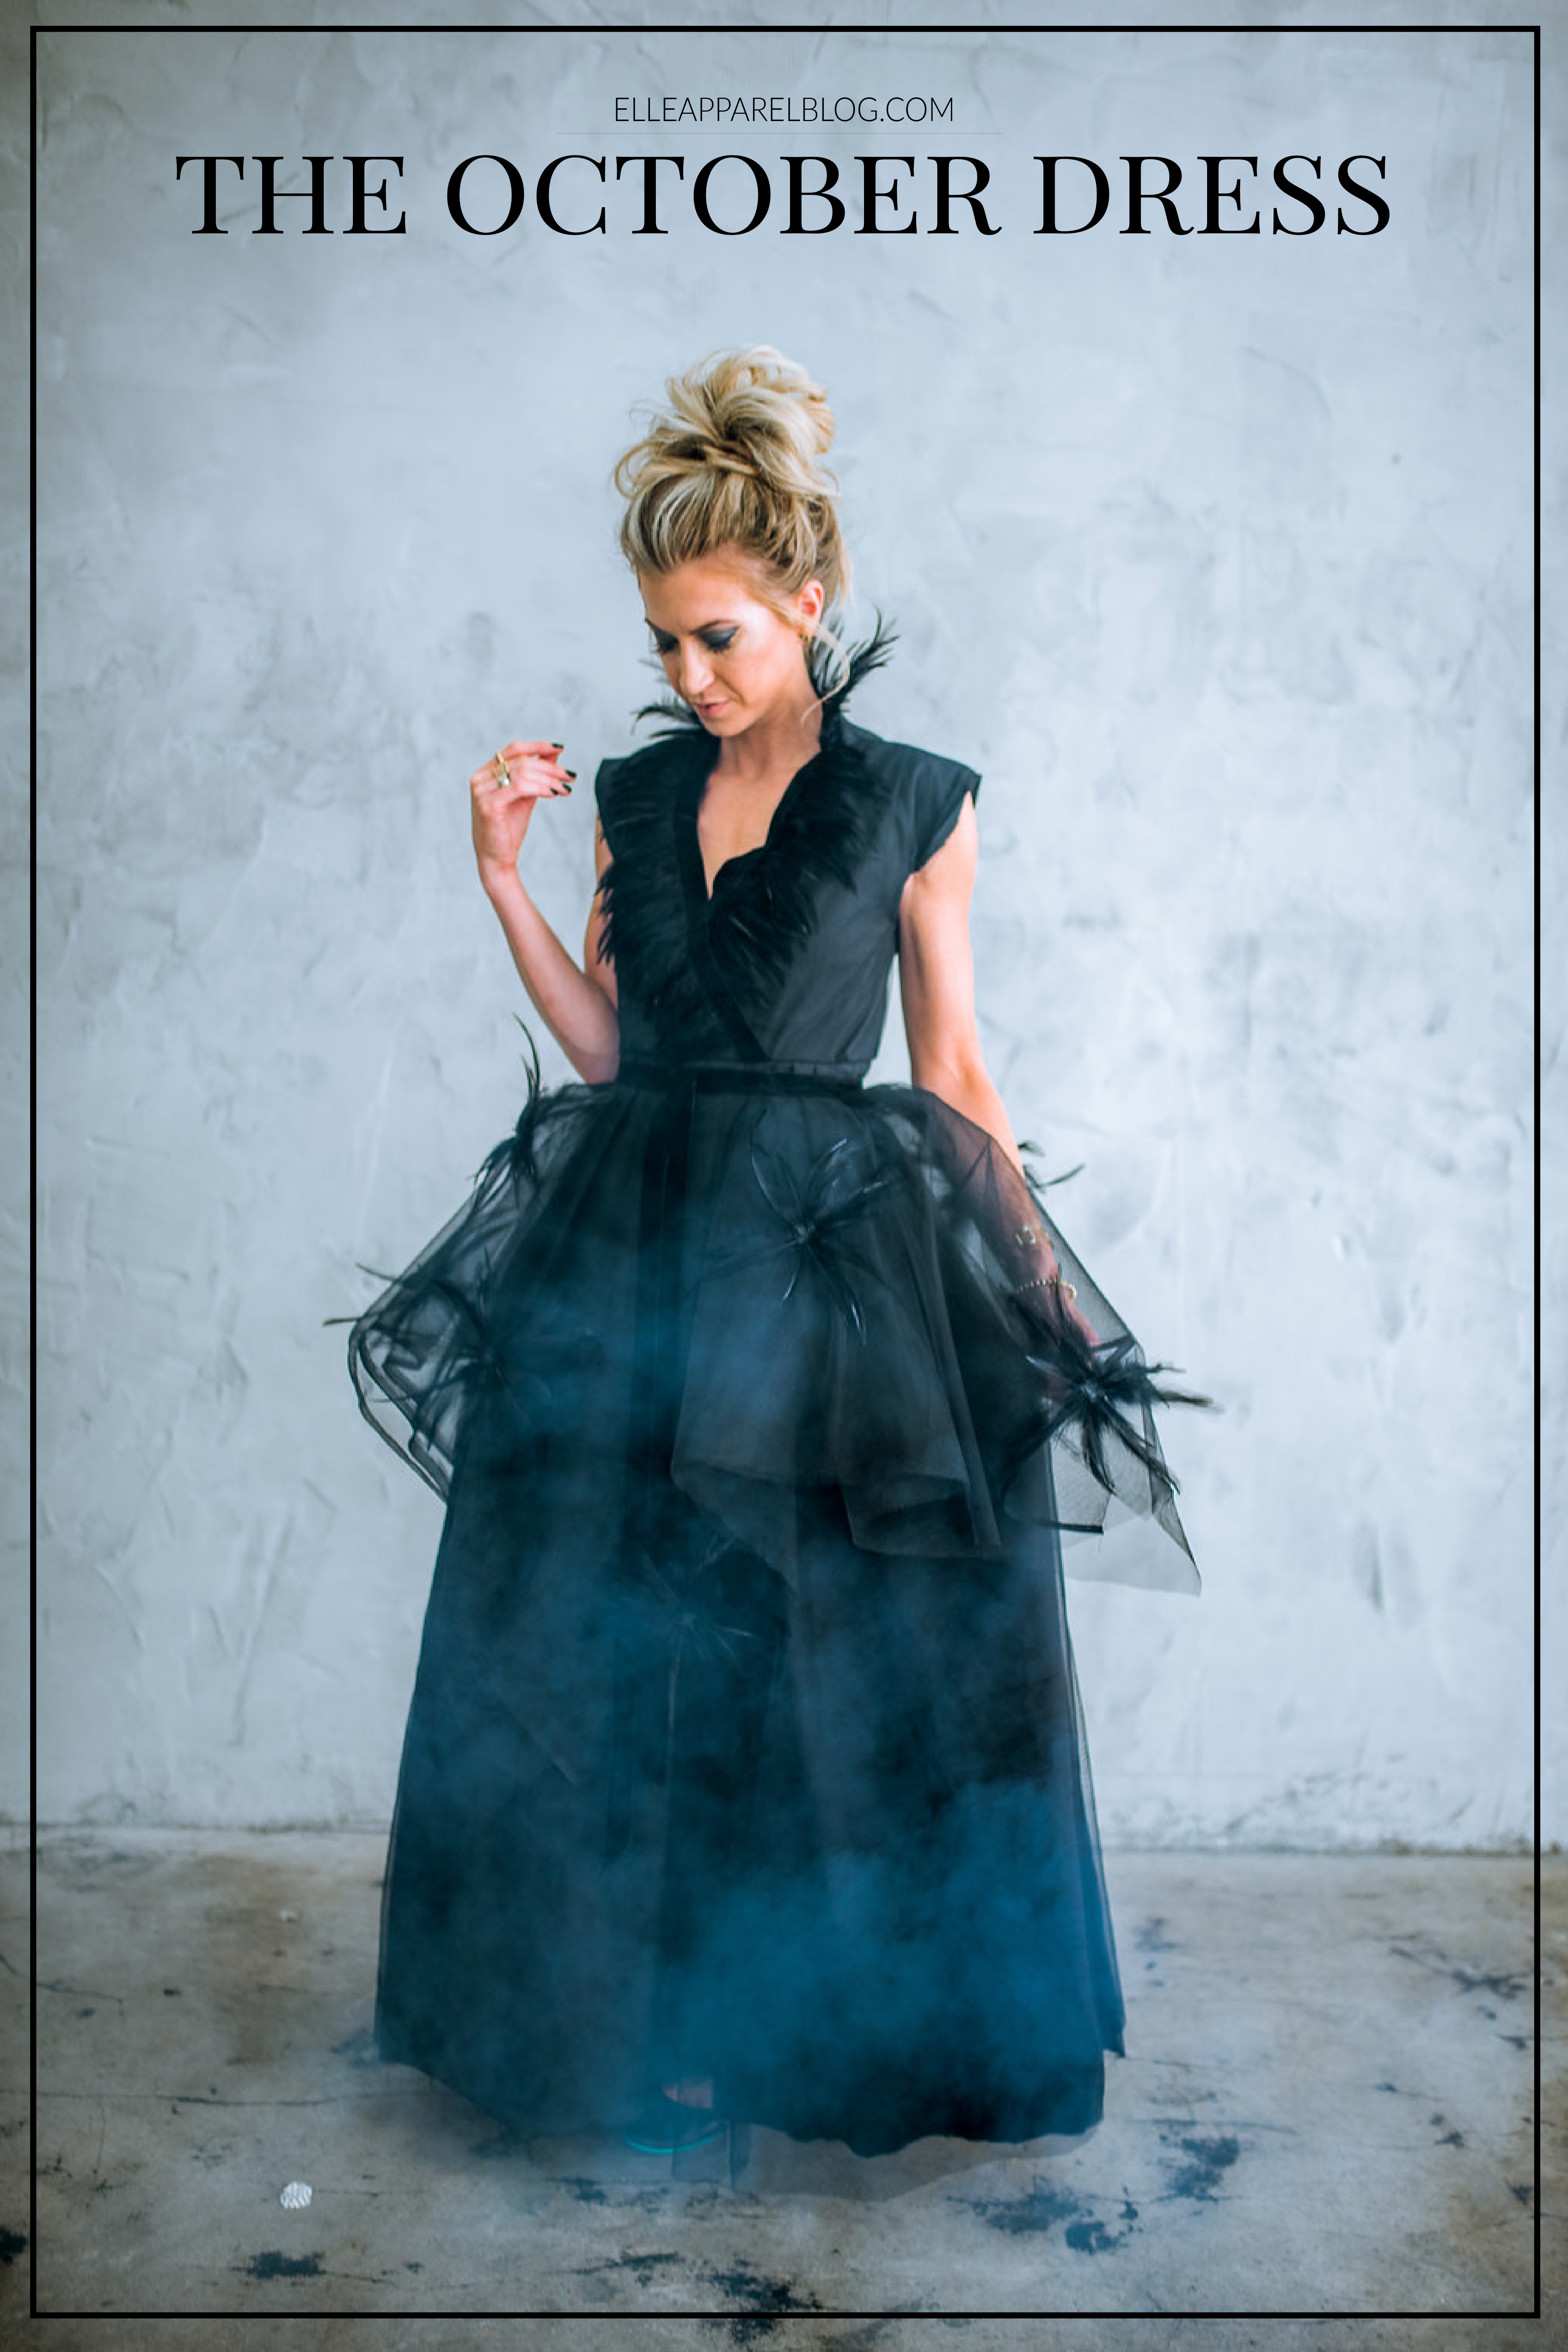 0f1808e6 MONTHLY DRESS SERIES: THE OCTOBER DRESS - Elle Apparel by Leanne Barlow